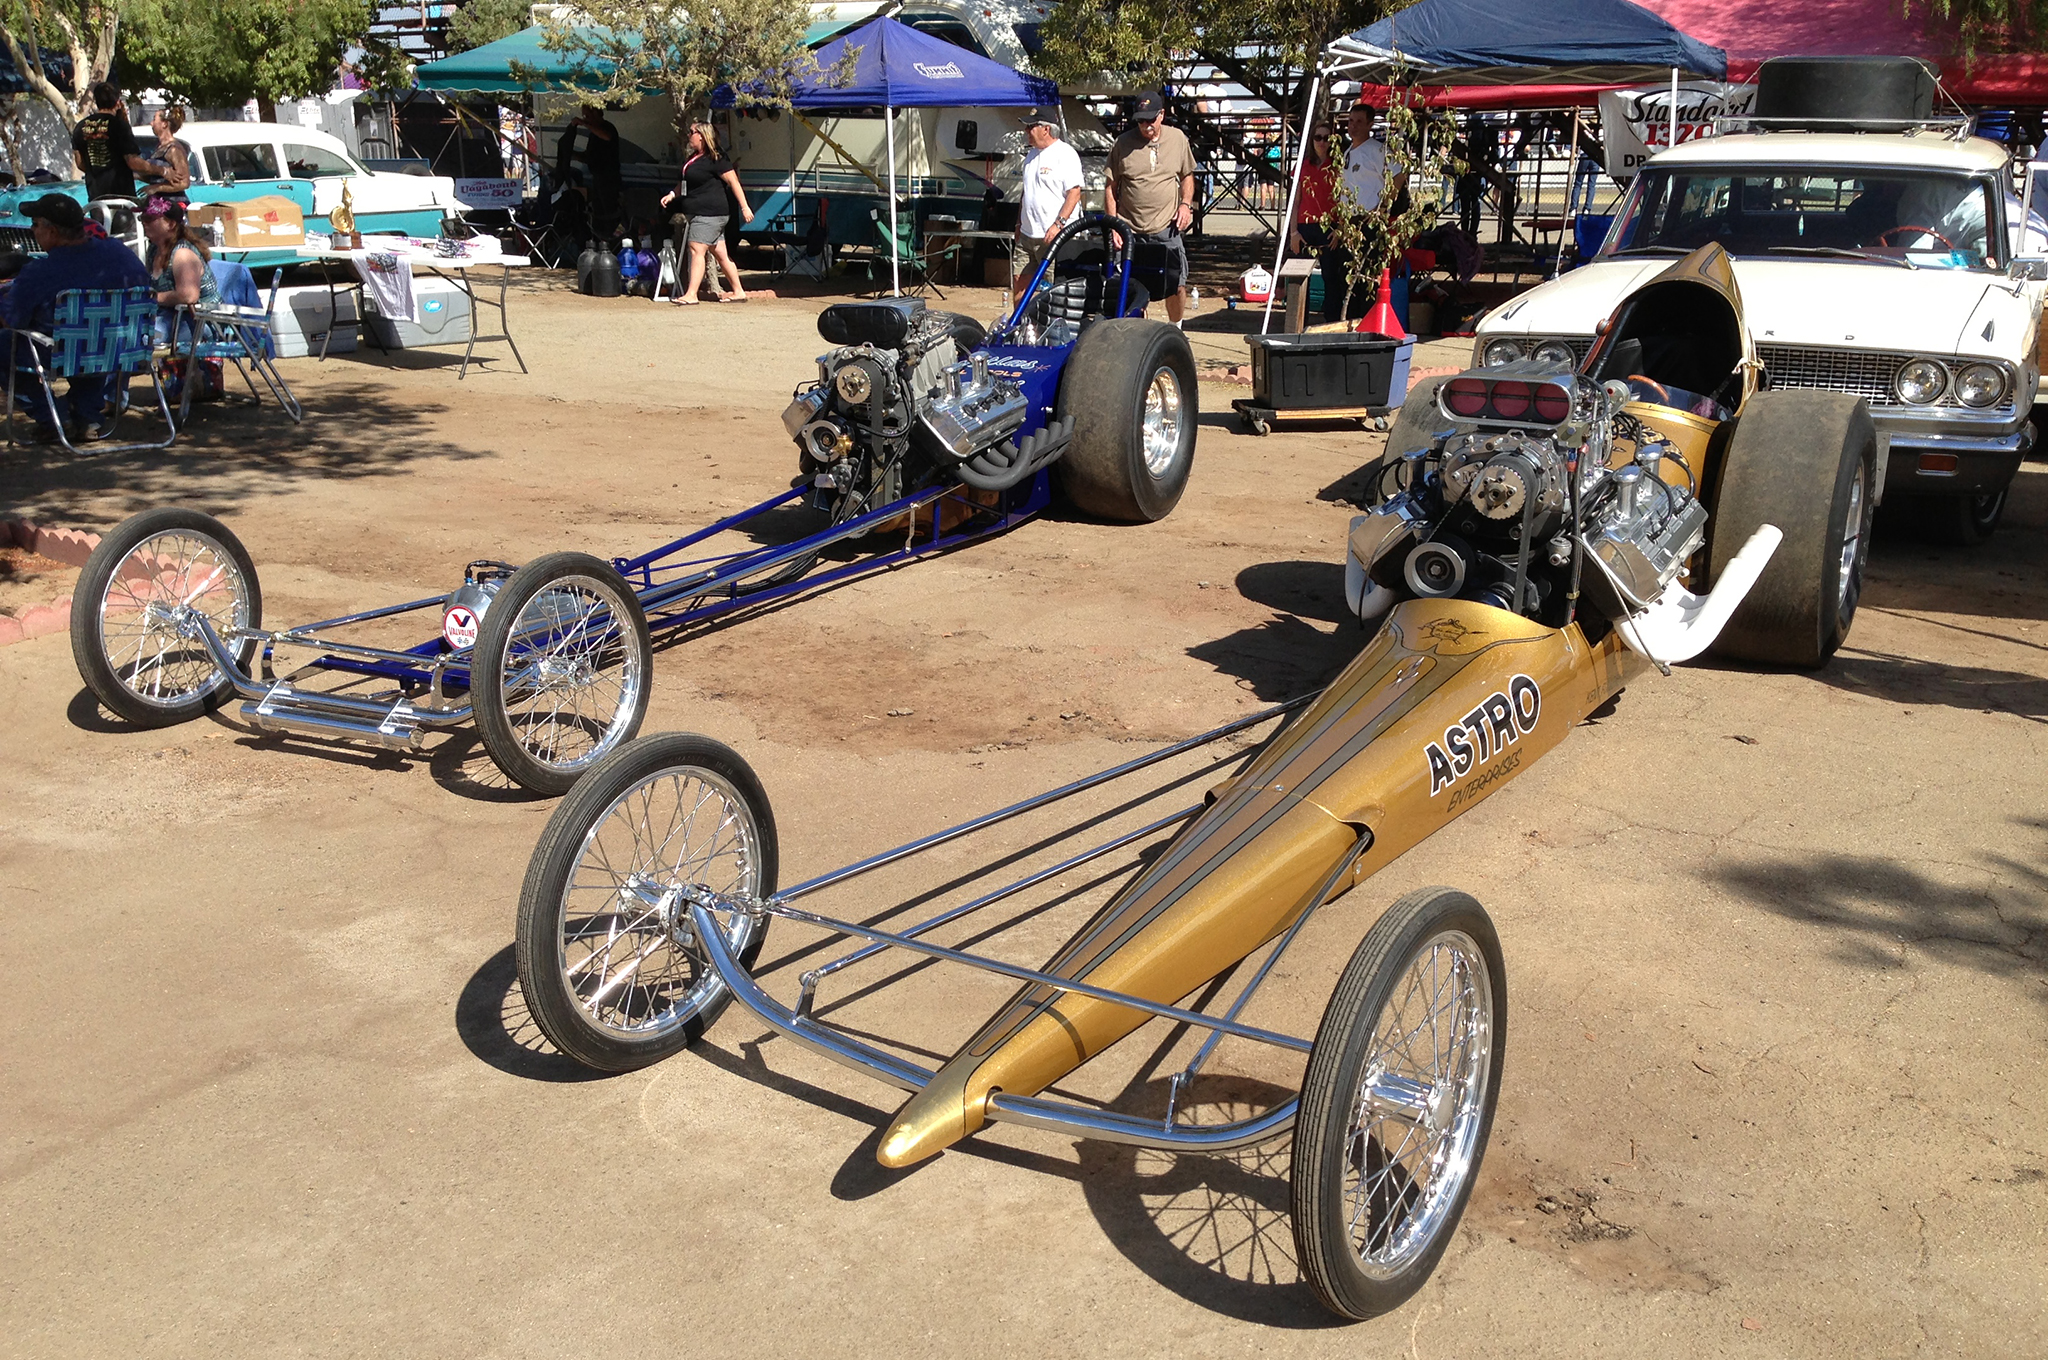 Front engine dragsters, as well as vintage Funny Cars, Gassers, and other nostalgic drag cars keep the excitement of old-time drag racing alive at Famoso Raceway in Bakersfield.